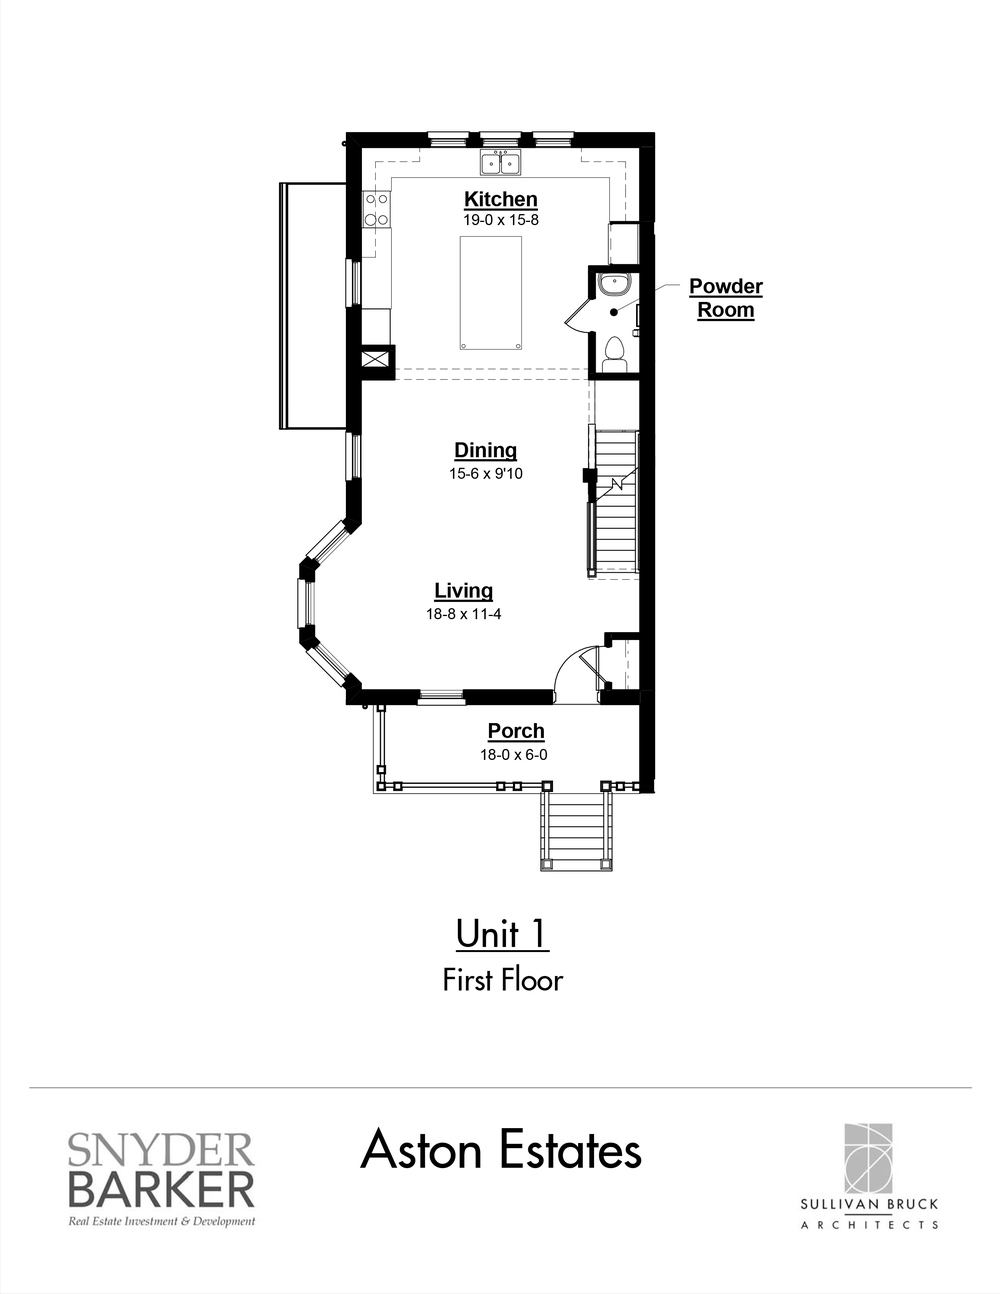 Aston_Estates_Unit_1_First_Floor.jpg